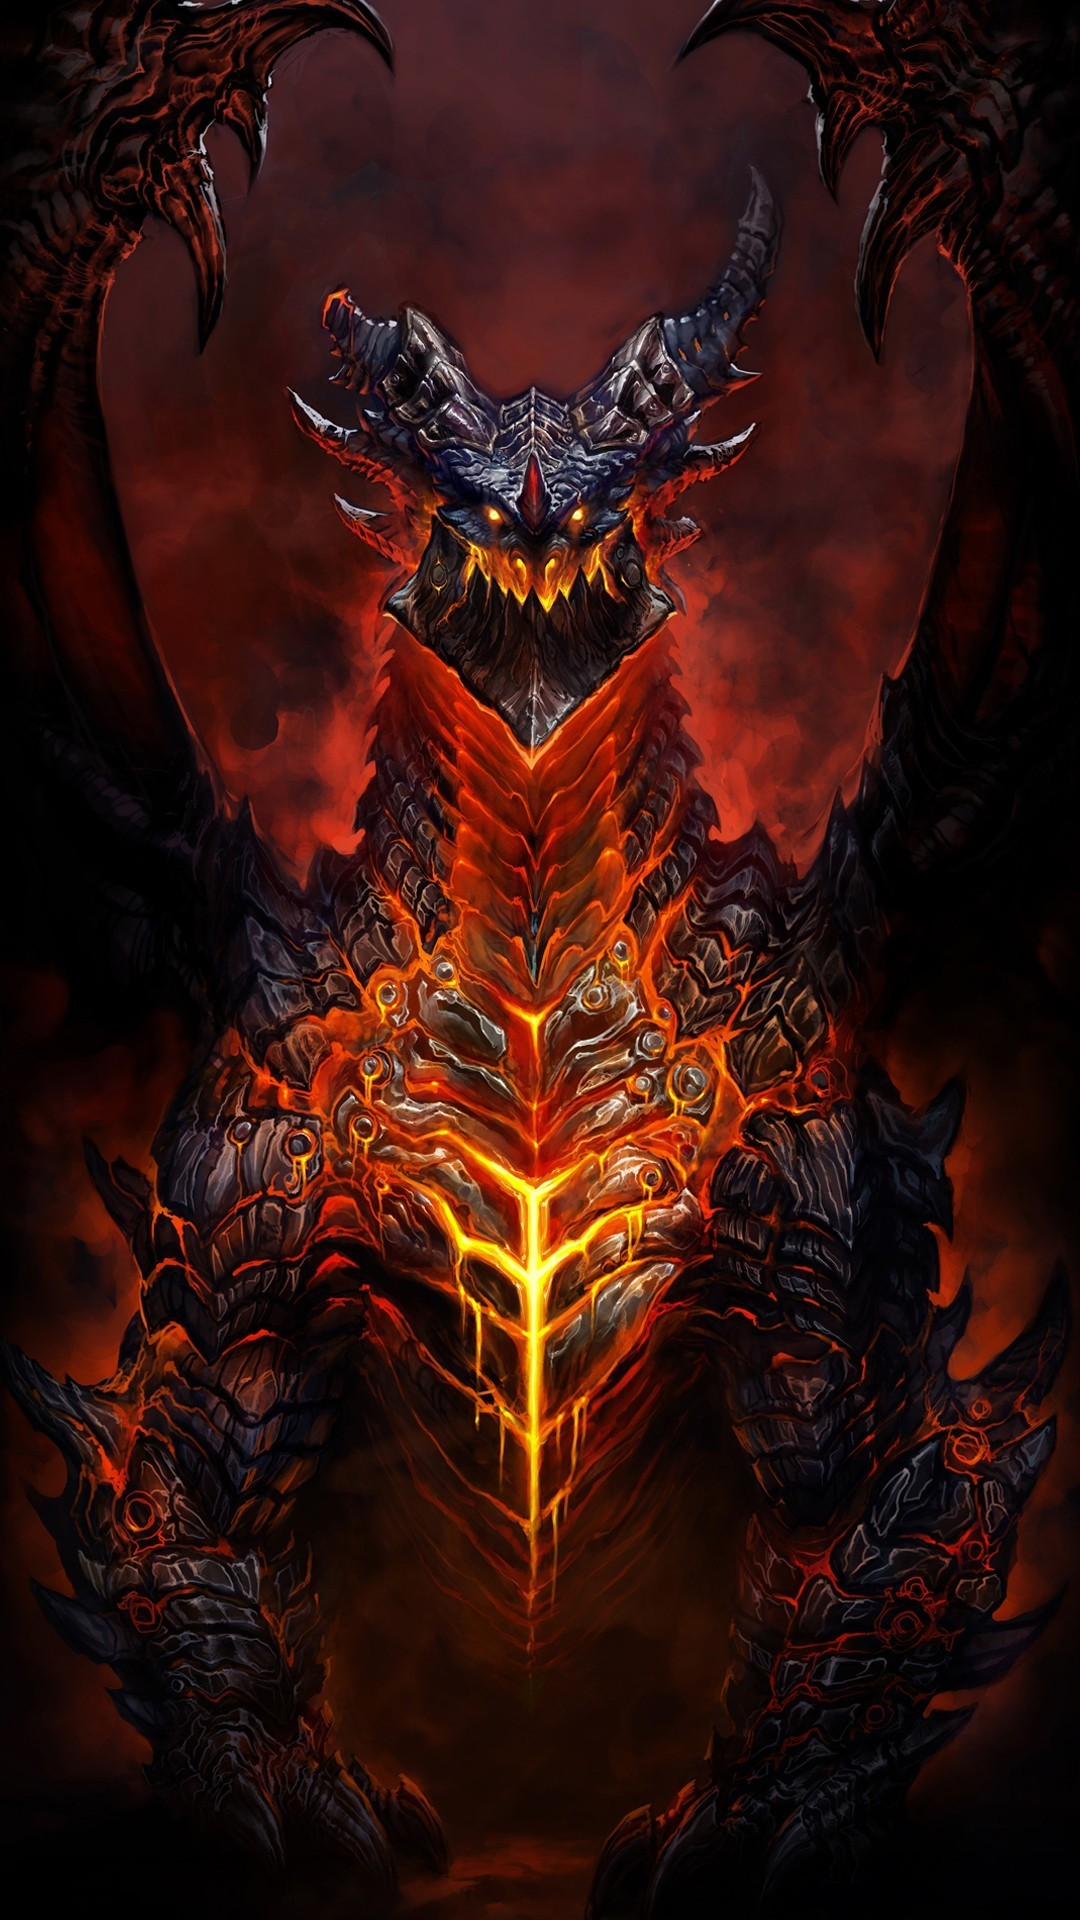 1080x1920 Deathwing World Of Warcraft Game IPhone 6+ HD Wallpaper